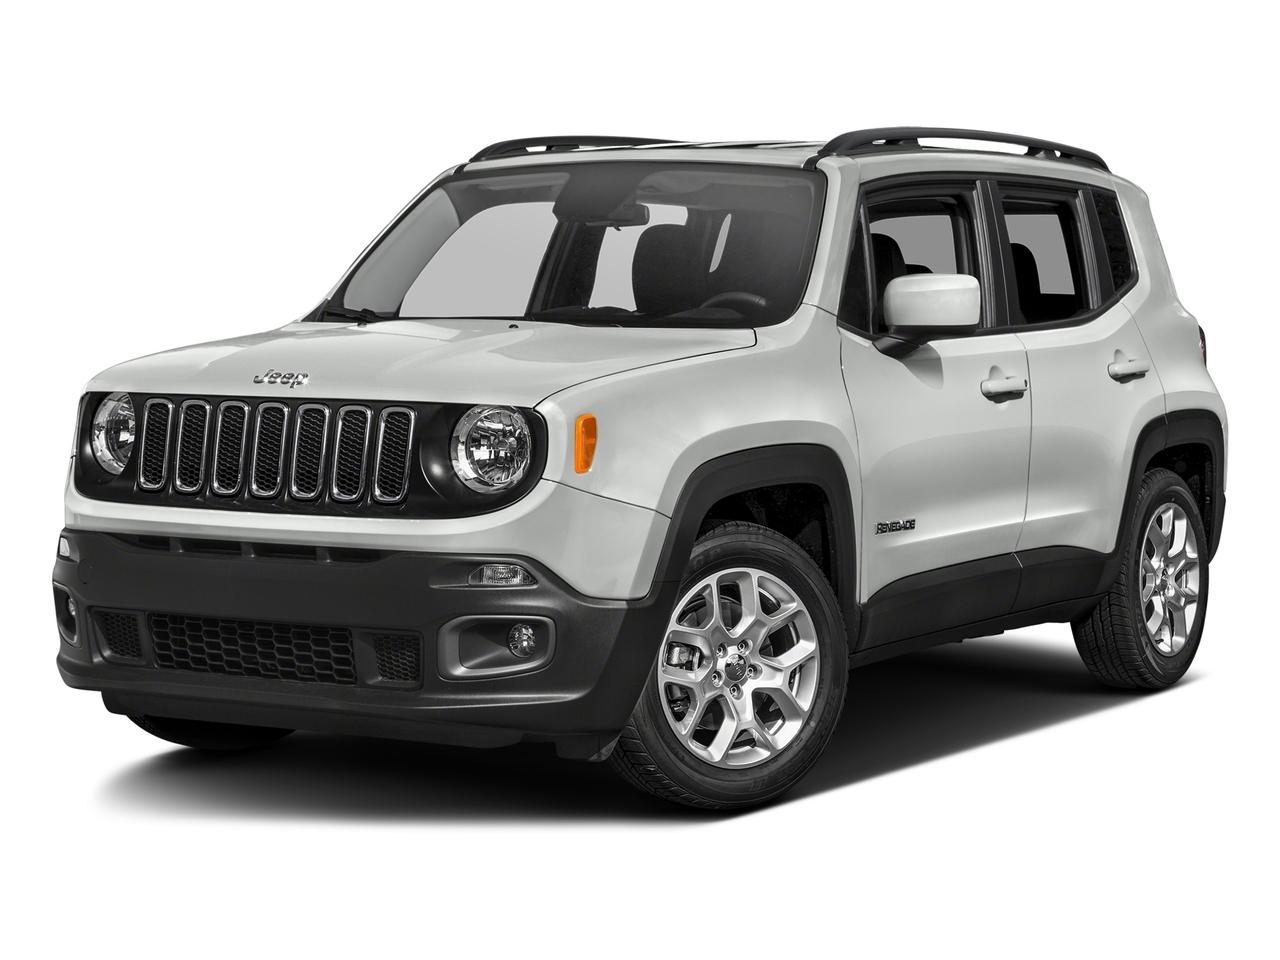 2017 Jeep Renegade Vehicle Photo in ANNAPOLIS, MD 21401